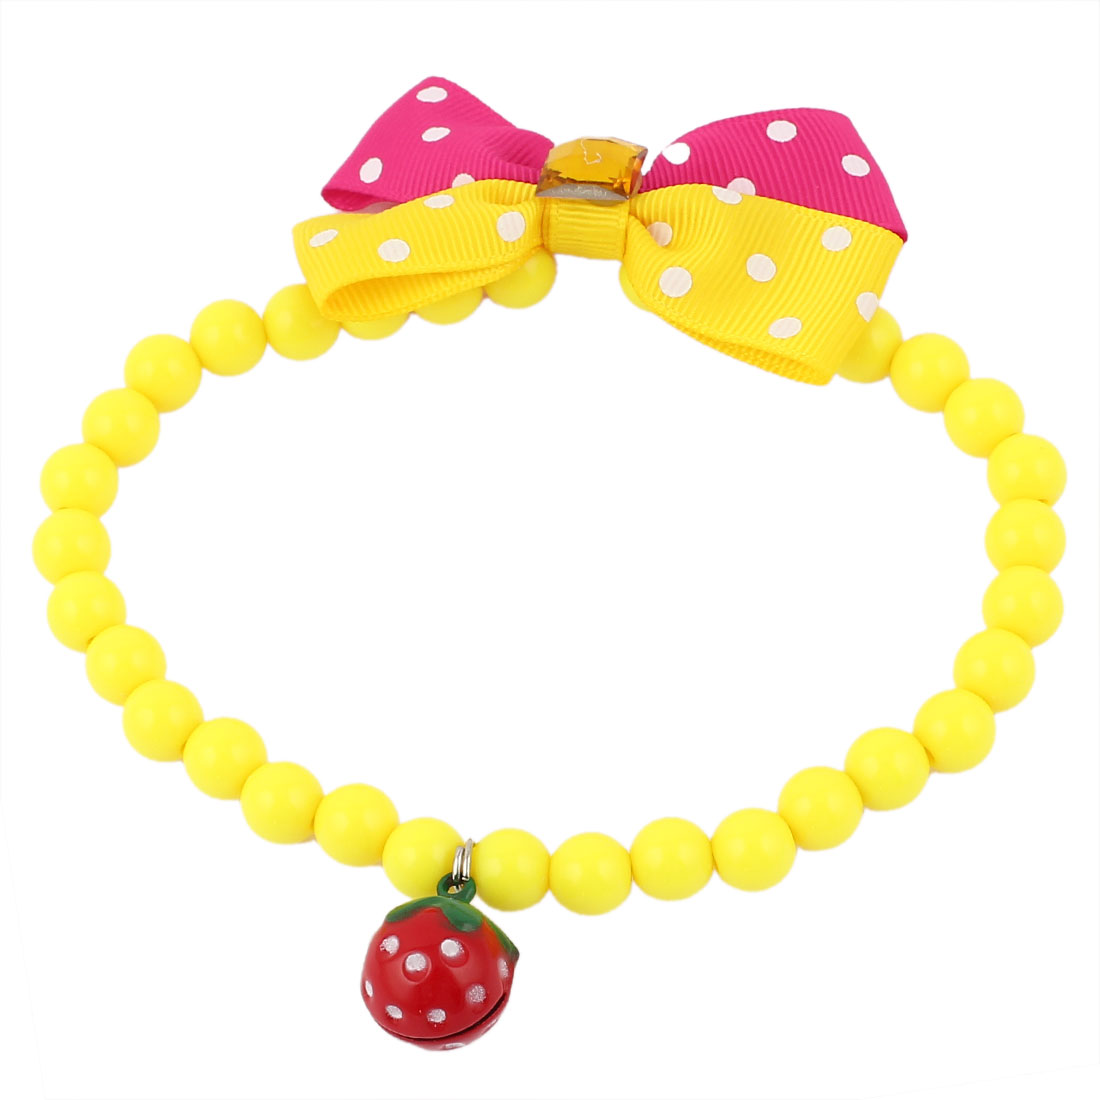 Faux Crystal Bowtie Accent Pet Dog Plastic Beads Collar Necklace Yellow Fuchsia M